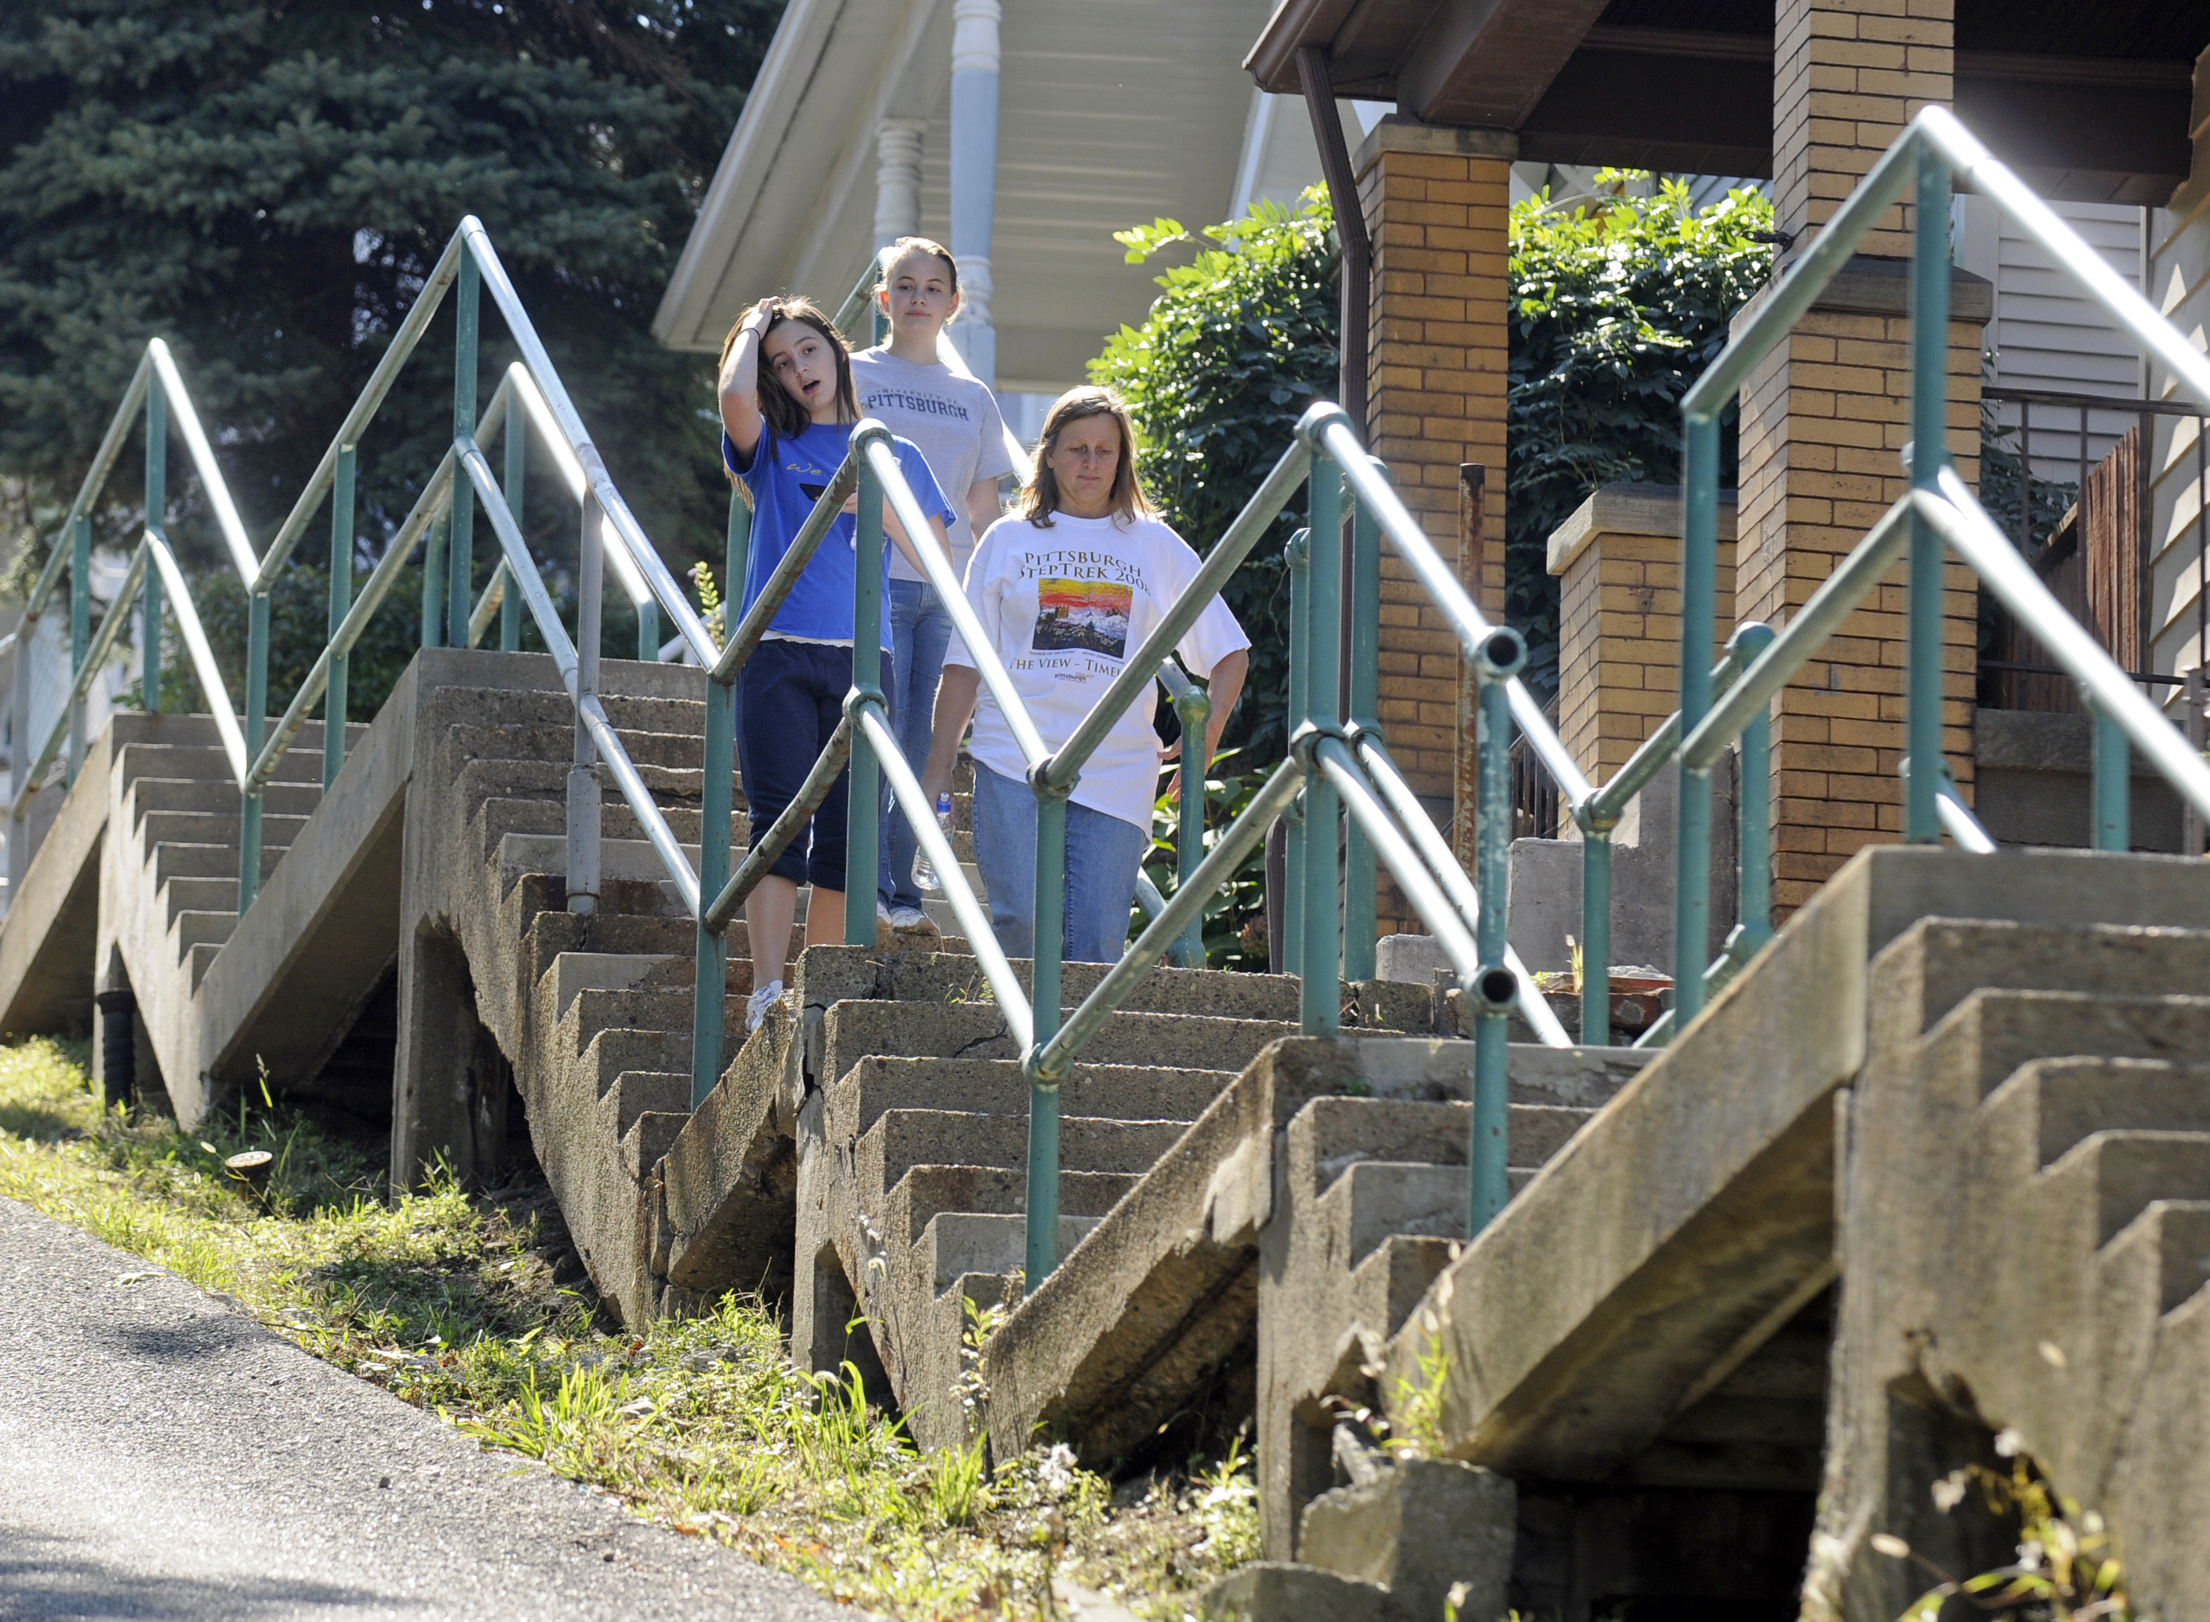 In somewhat of a busman's holiday, Patty Landon (right) leads her daughters Christine (left), 16, and Kate, 20, down the long series of steps along Sterling St. on Pittsburgh's South Side Slopes during the 8th annual Step Trek. (Bob Donaldson/Post-Gazette)